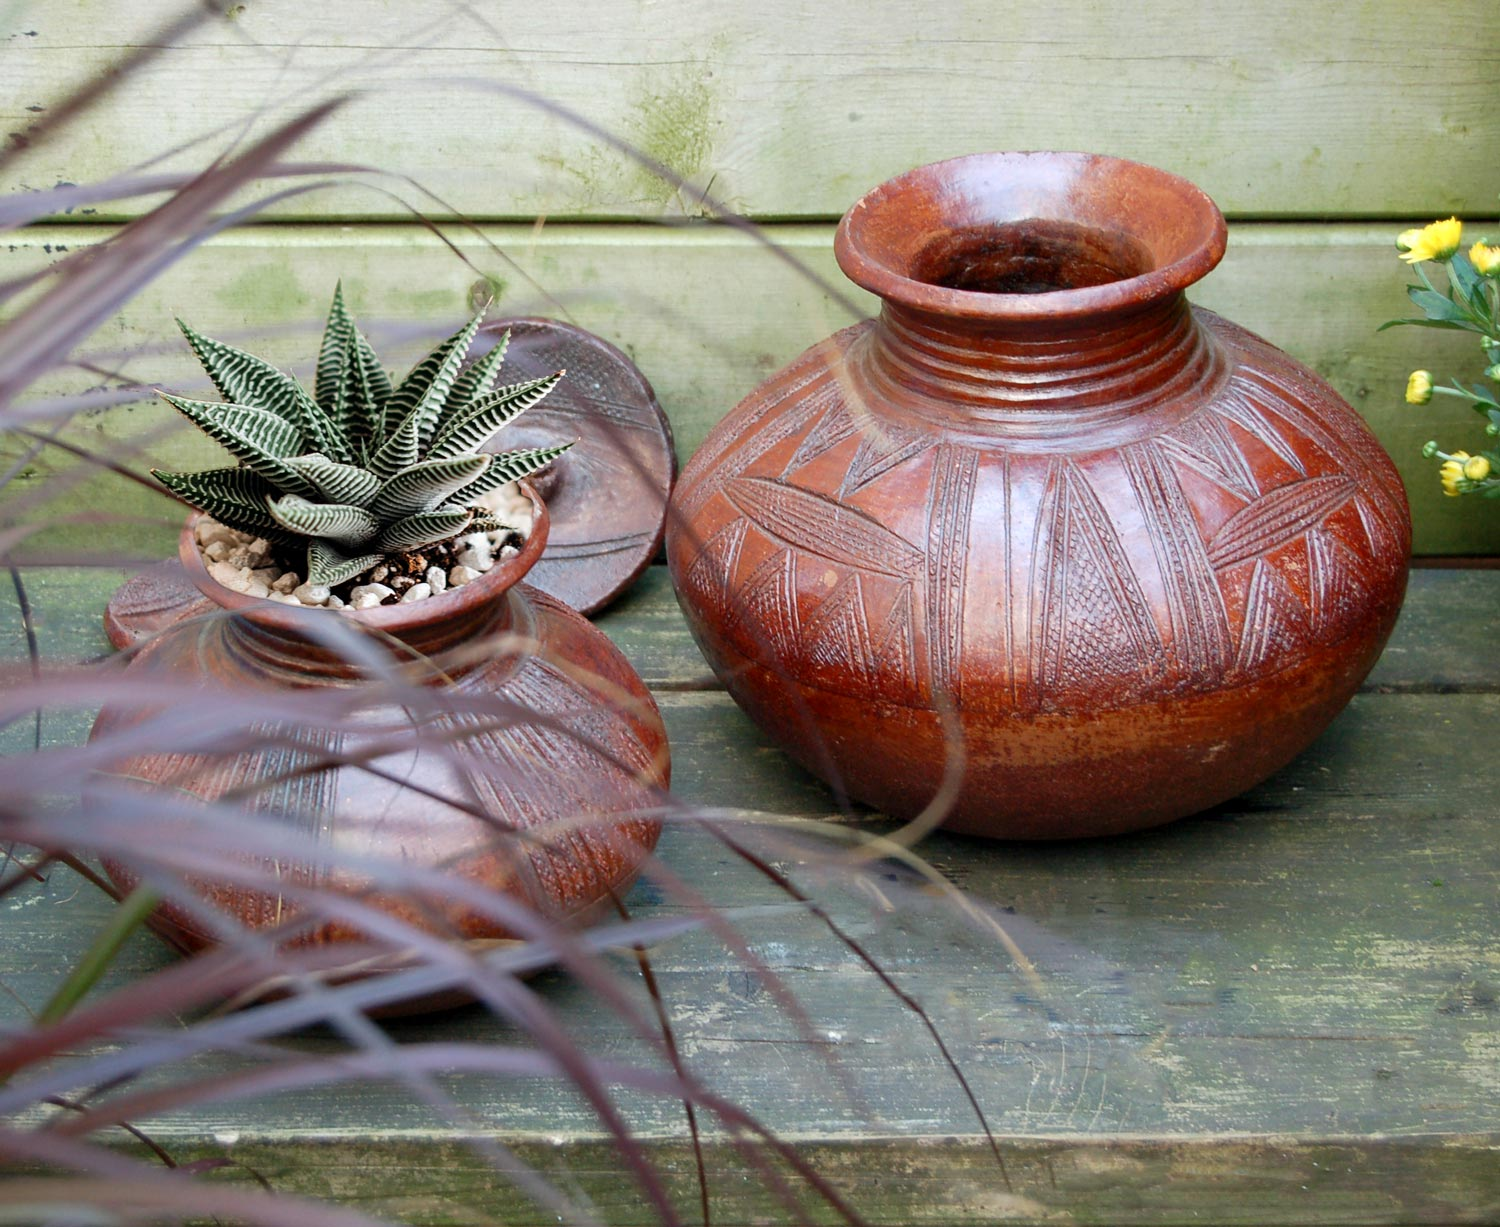 Nupe Pottery Air Plant Planter